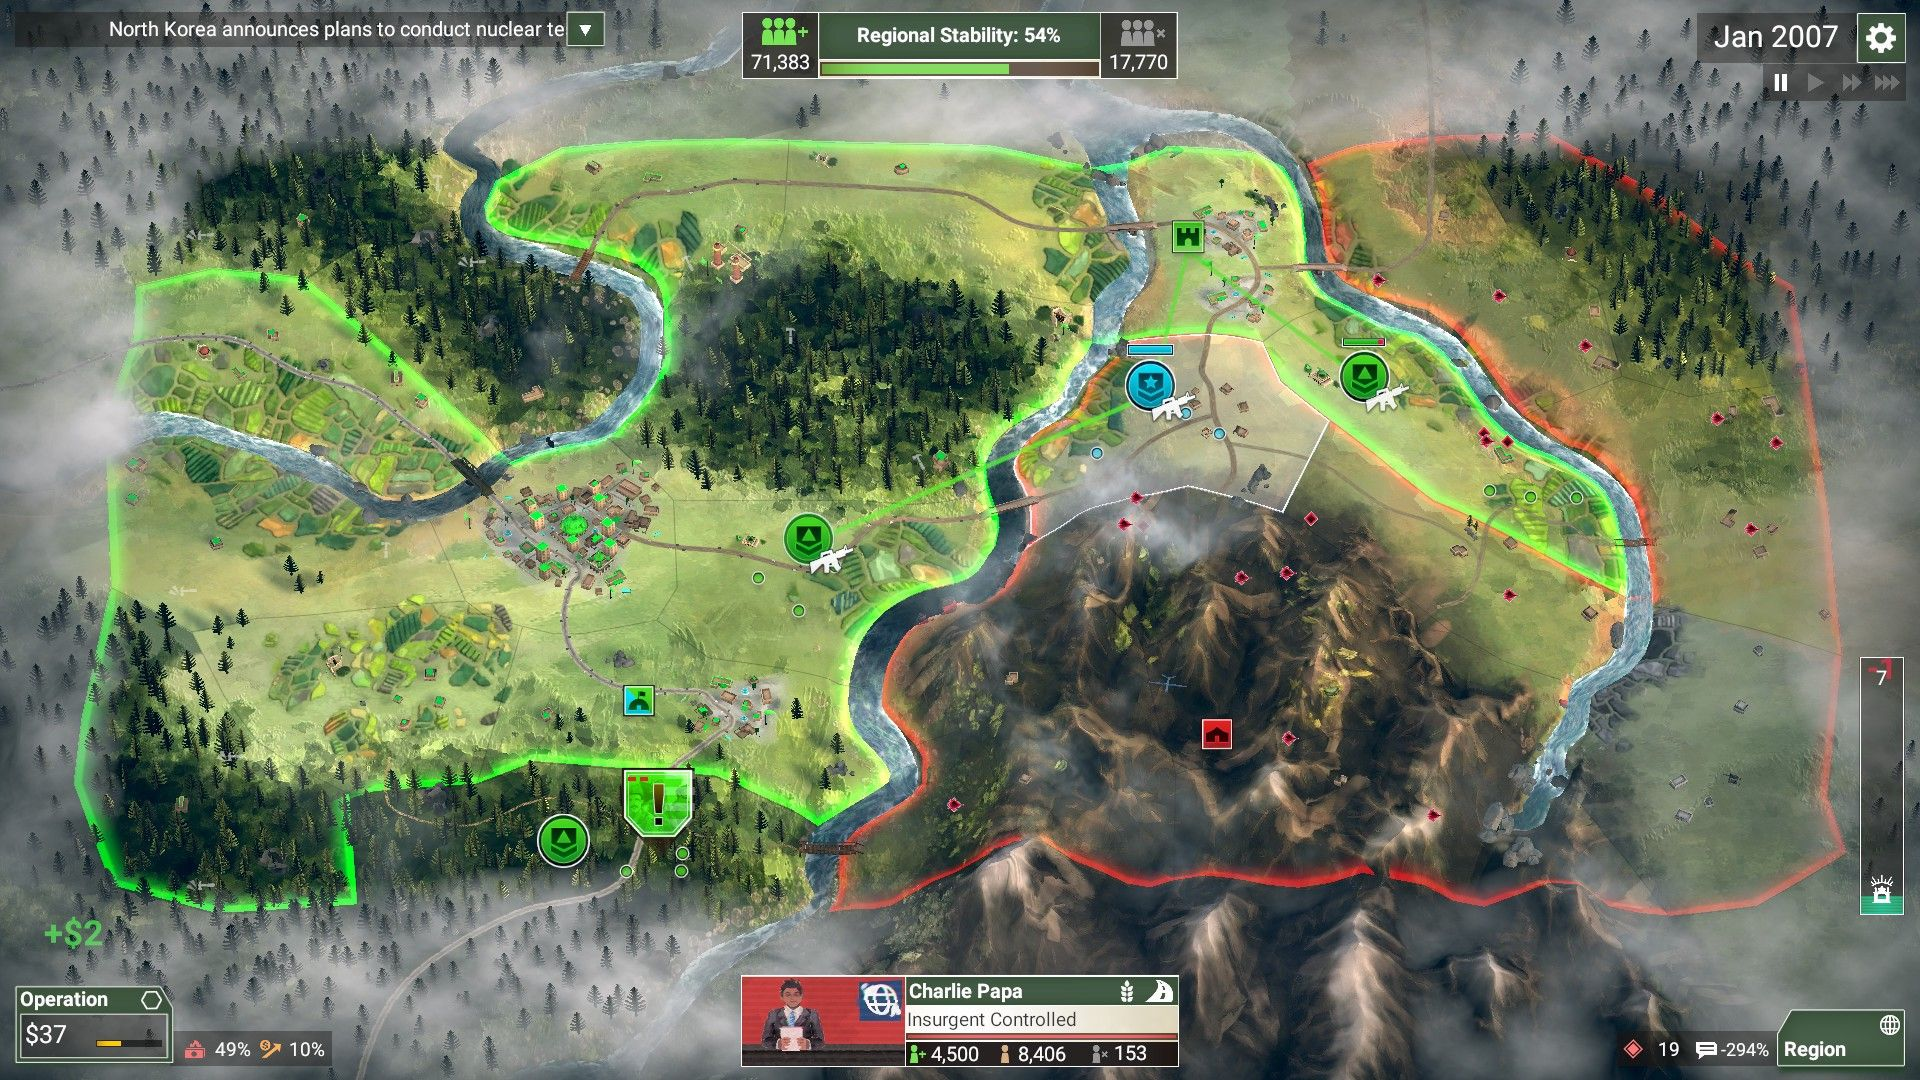 An example of Rebel Inc.'s gameplay.